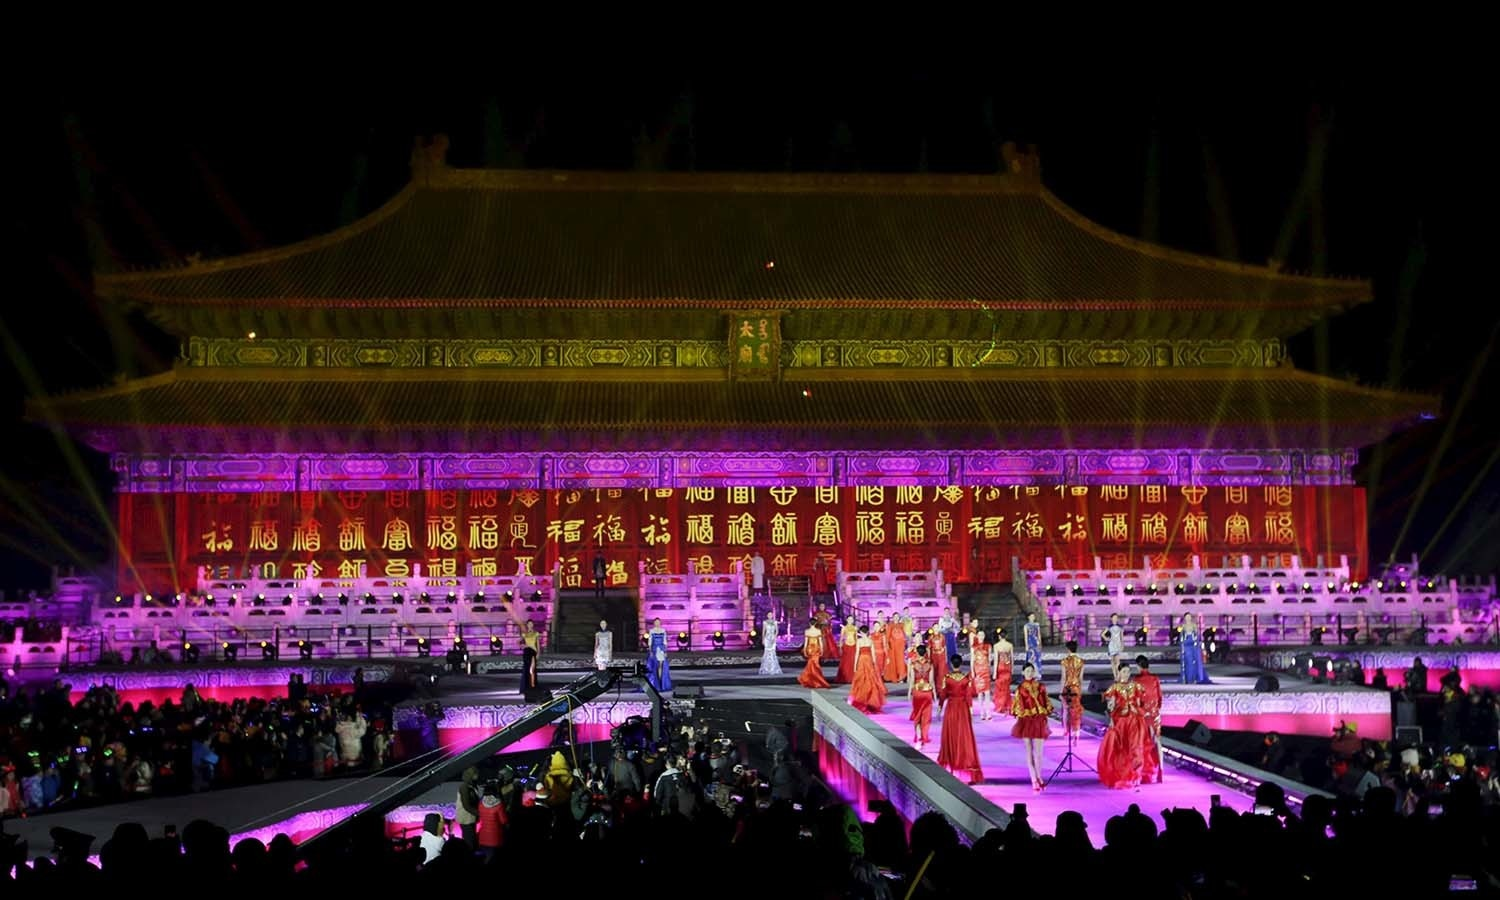 Models perform to celebrate the new year during a countdown event at Tai Miao, the imperial ancestral temple in the Forbidden City, in Beijing, China, December 31, 2015. REUTERS/Jason Lee